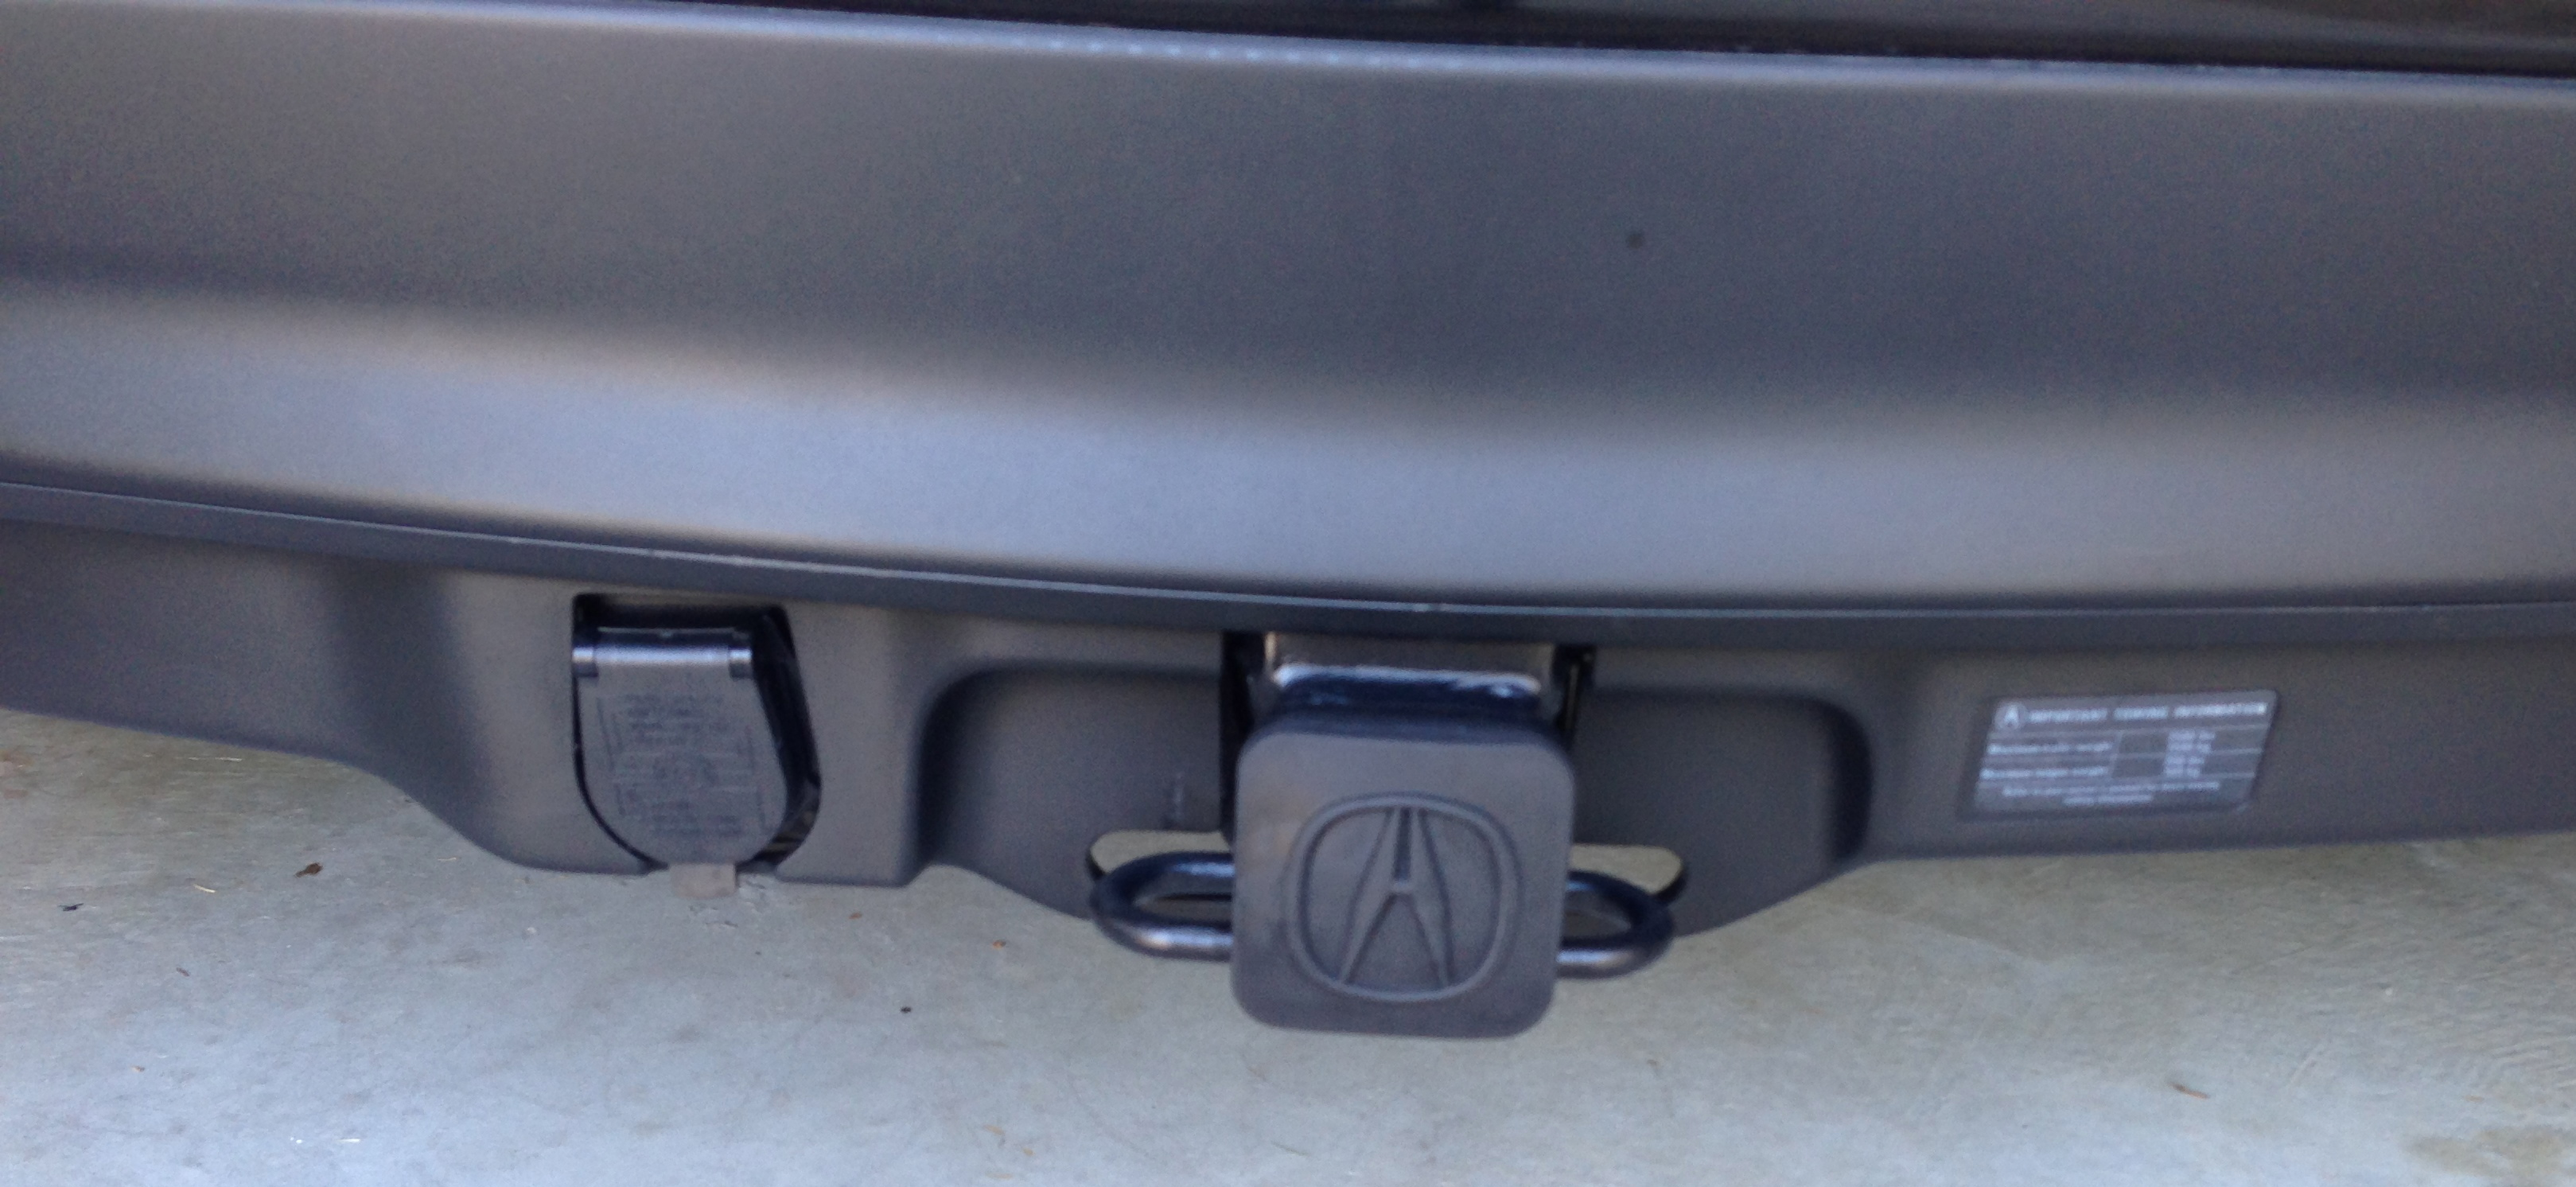 52473d1382889662 towing hitch img_2989 towing hitch page 2 acura mdx forum acura mdx suv forums